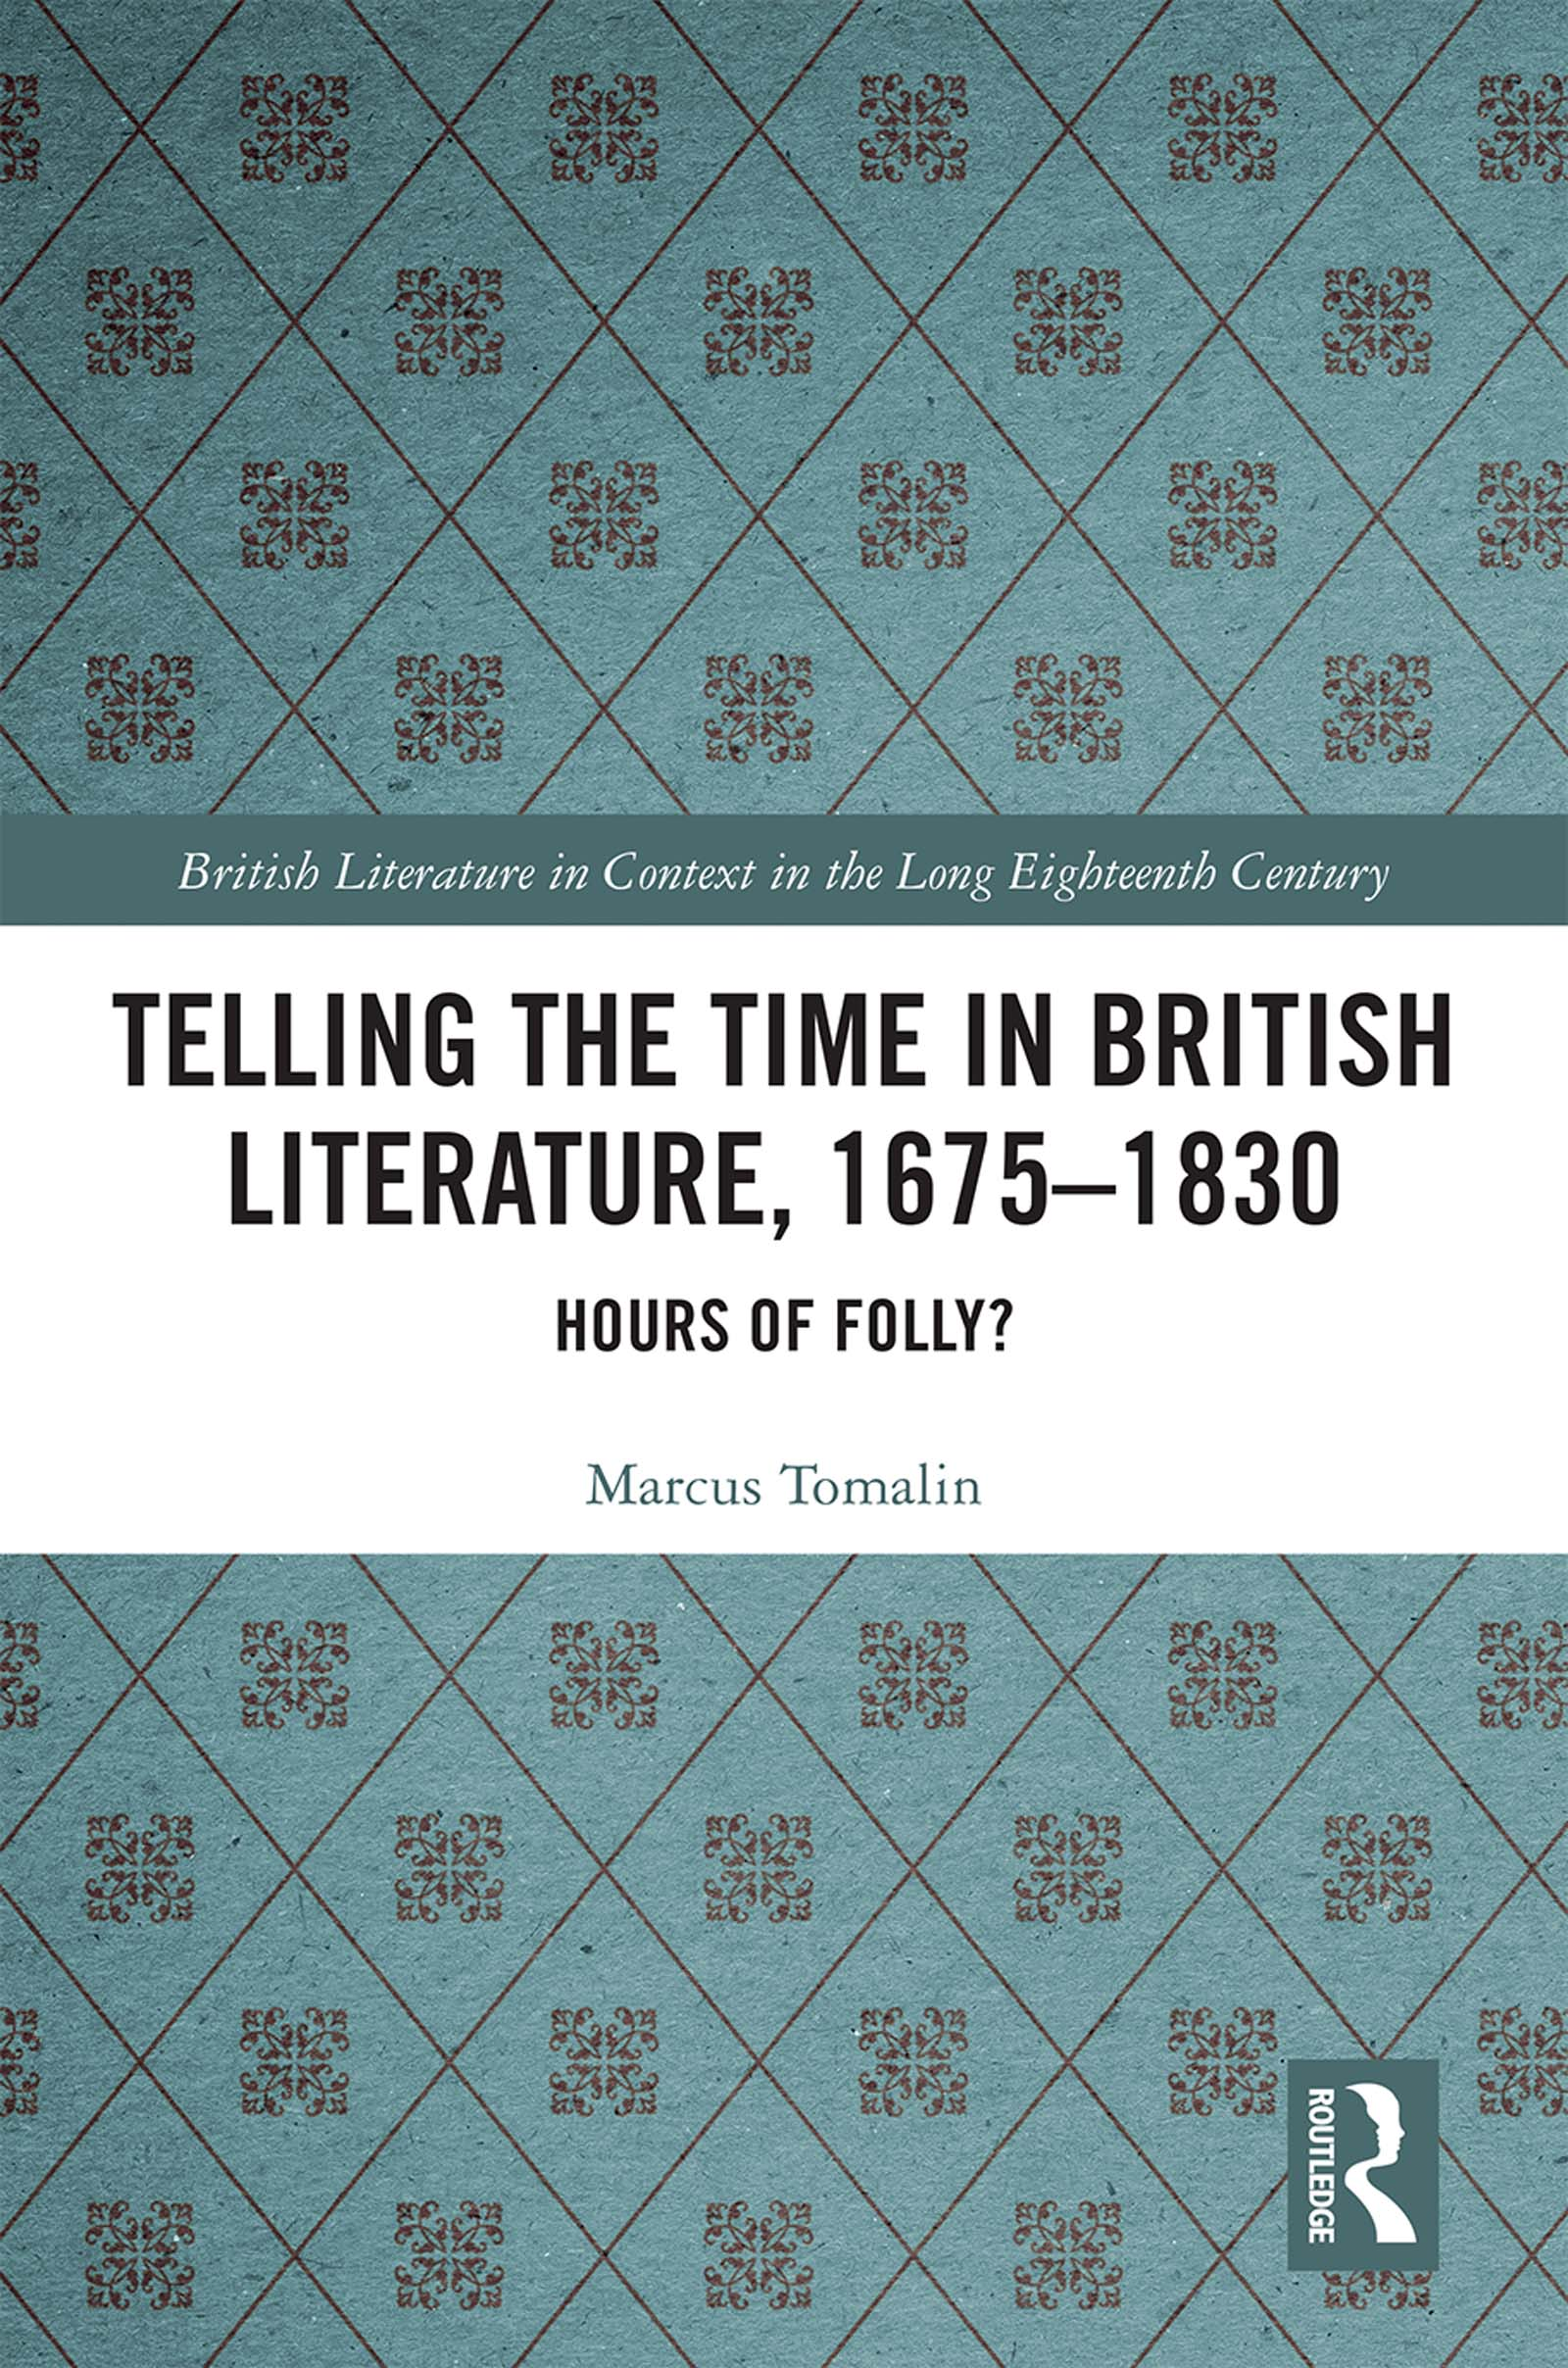 Telling the Time in British Literature, 1675-1830: Hours of Folly? book cover